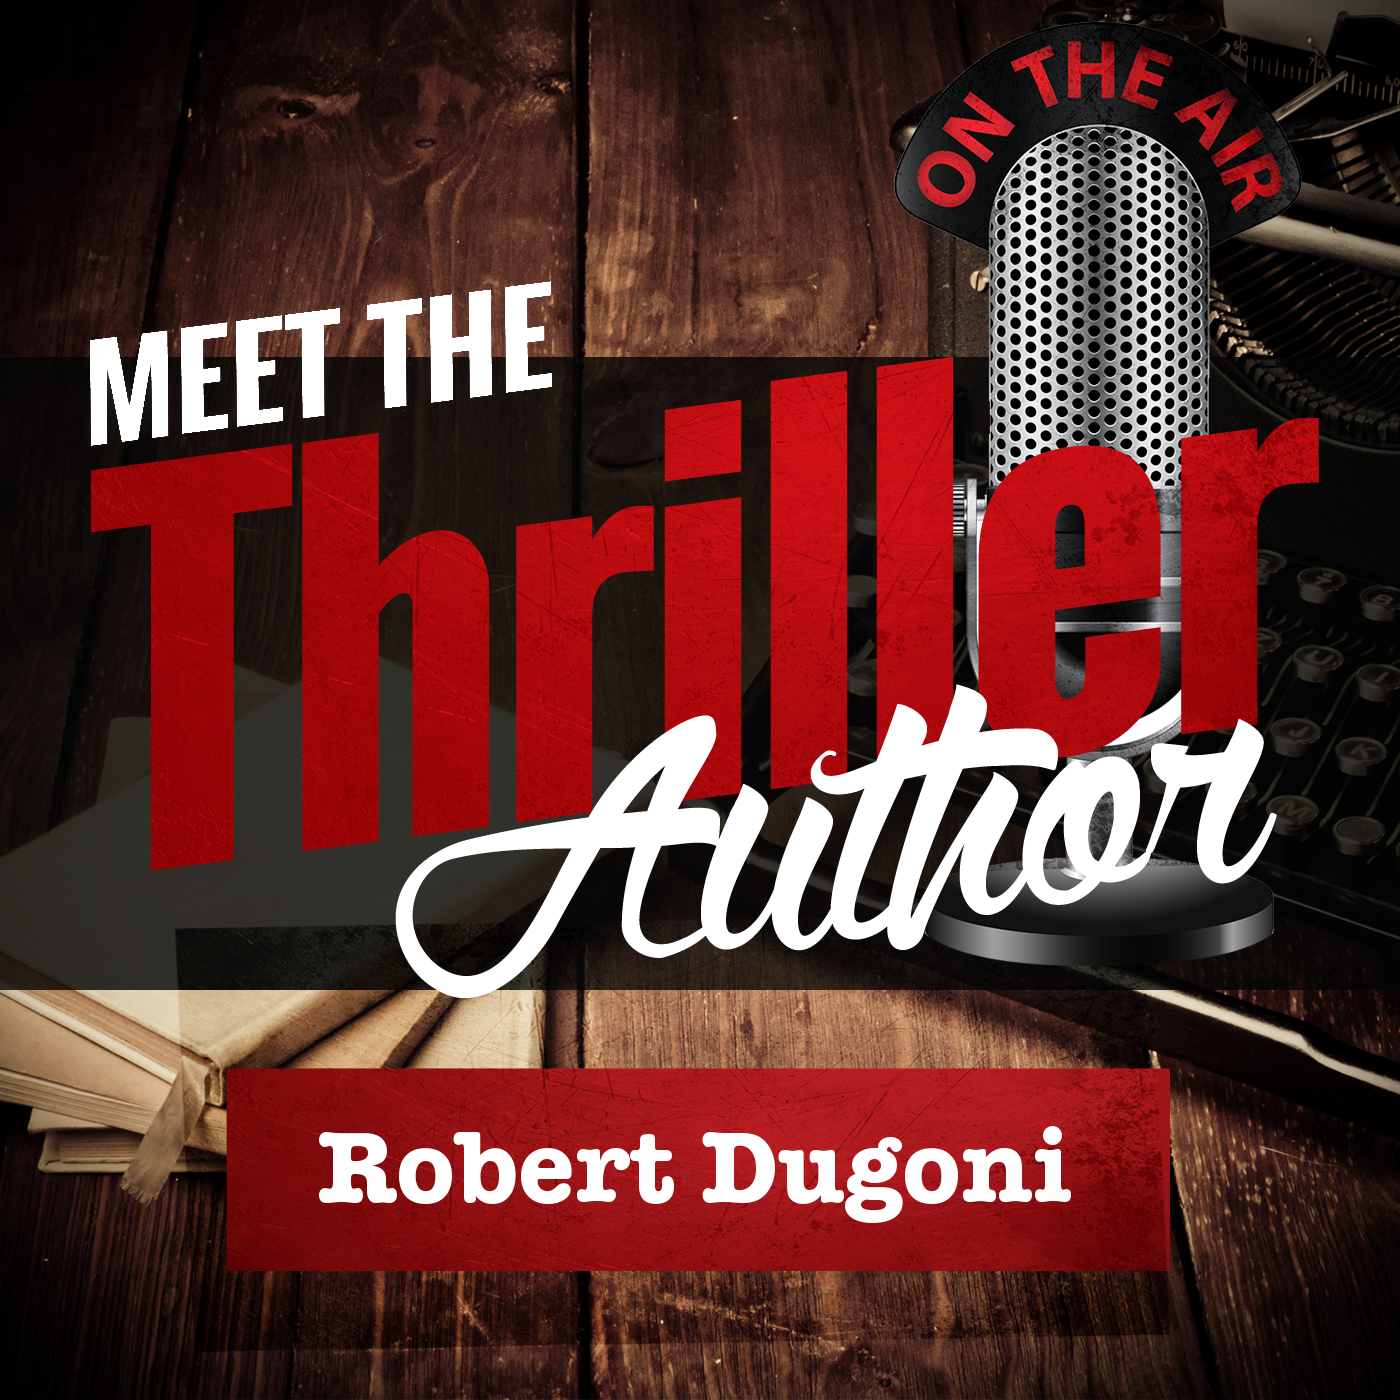 Meet the Thriller Author Podcast Interview Robert Dugoni